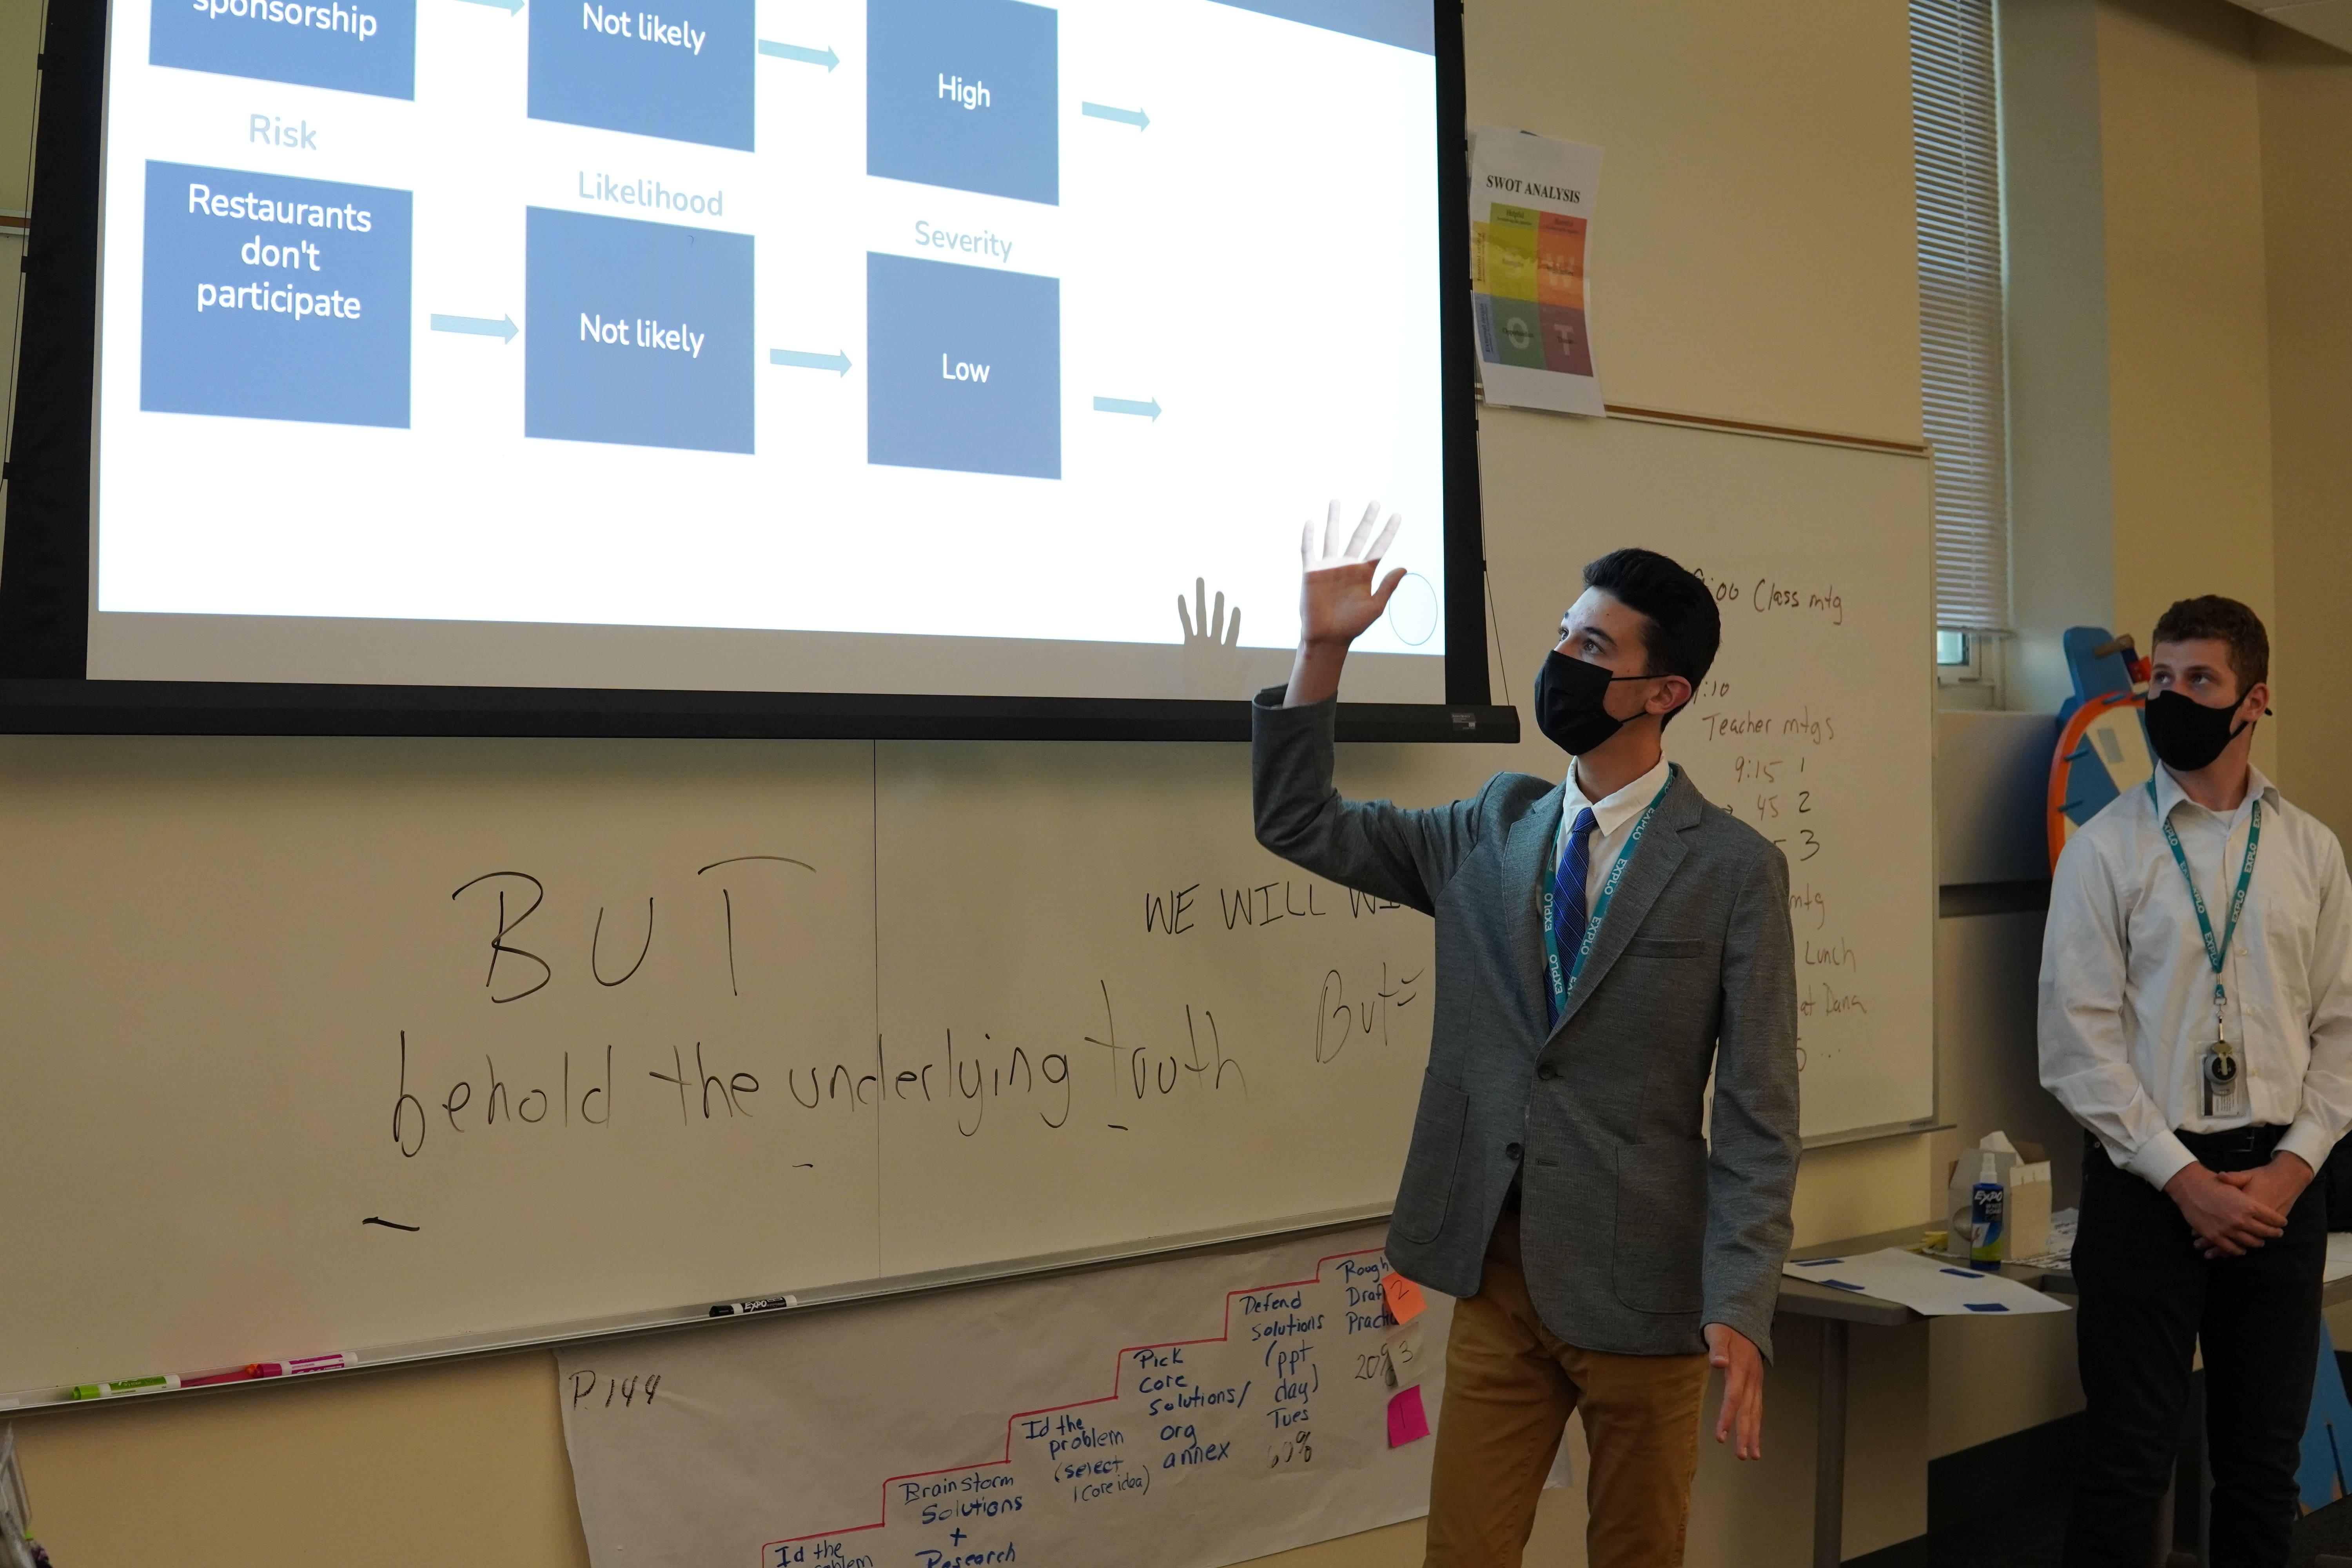 A student gestures to the risks and potential concerns for their business plan under the projector slide.